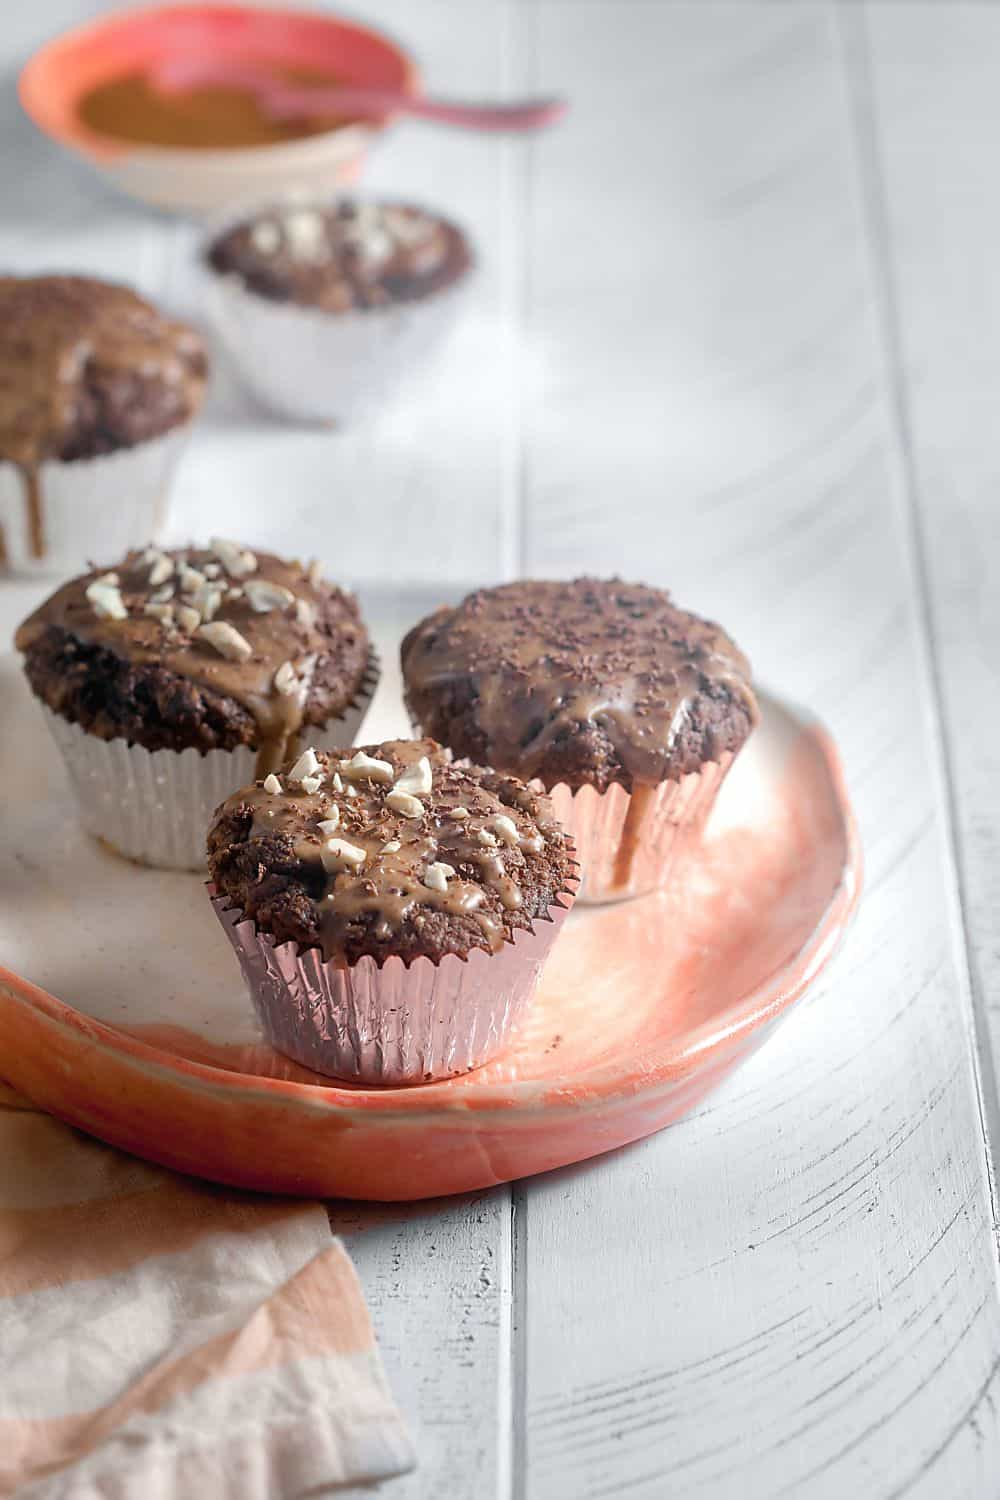 Grain-Free Chocolate Peanut Butter Cupcakes - paleo option